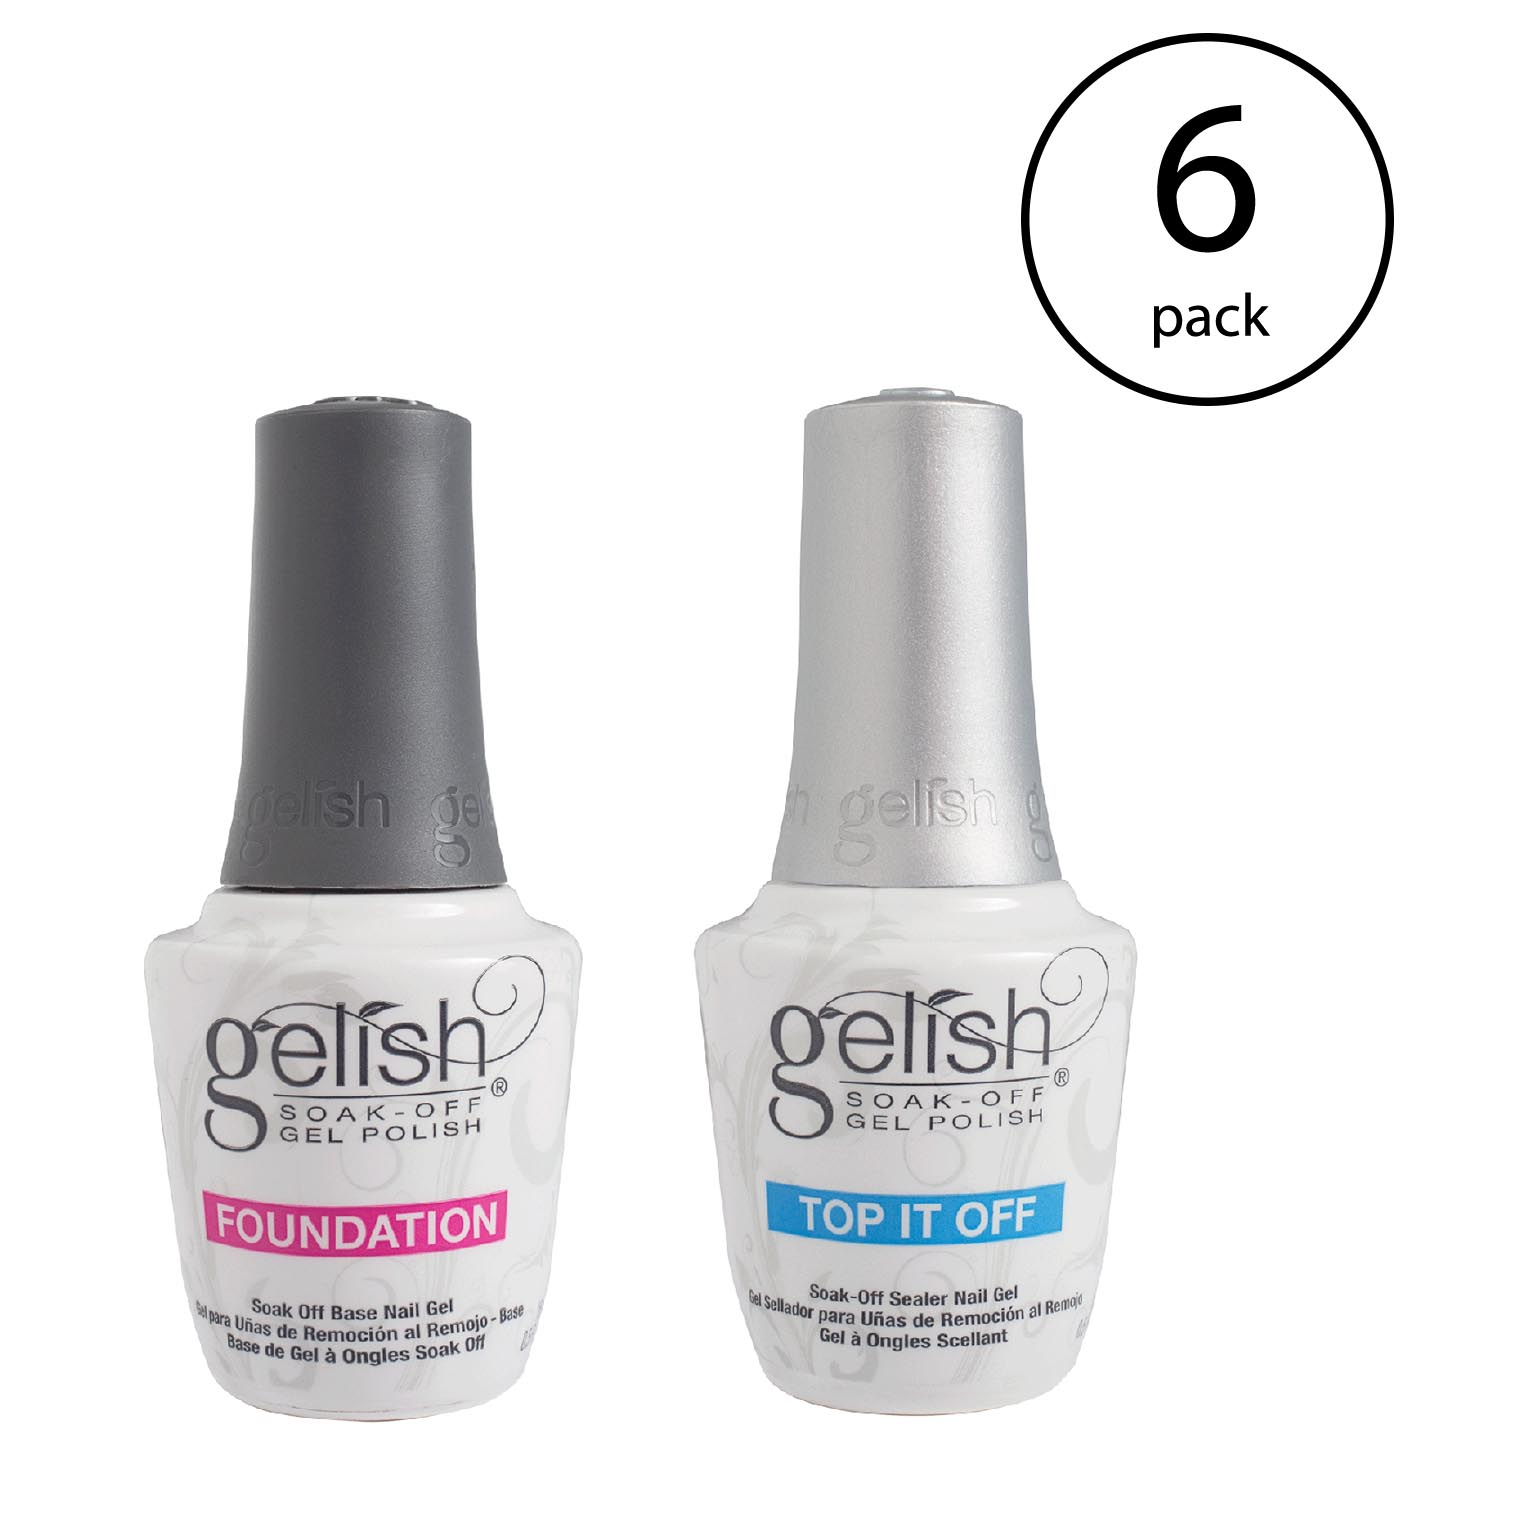 Gelish Dynamic Duo Foundation Base & Top It Off Sealer Gel Nail Polish (6 Pack)